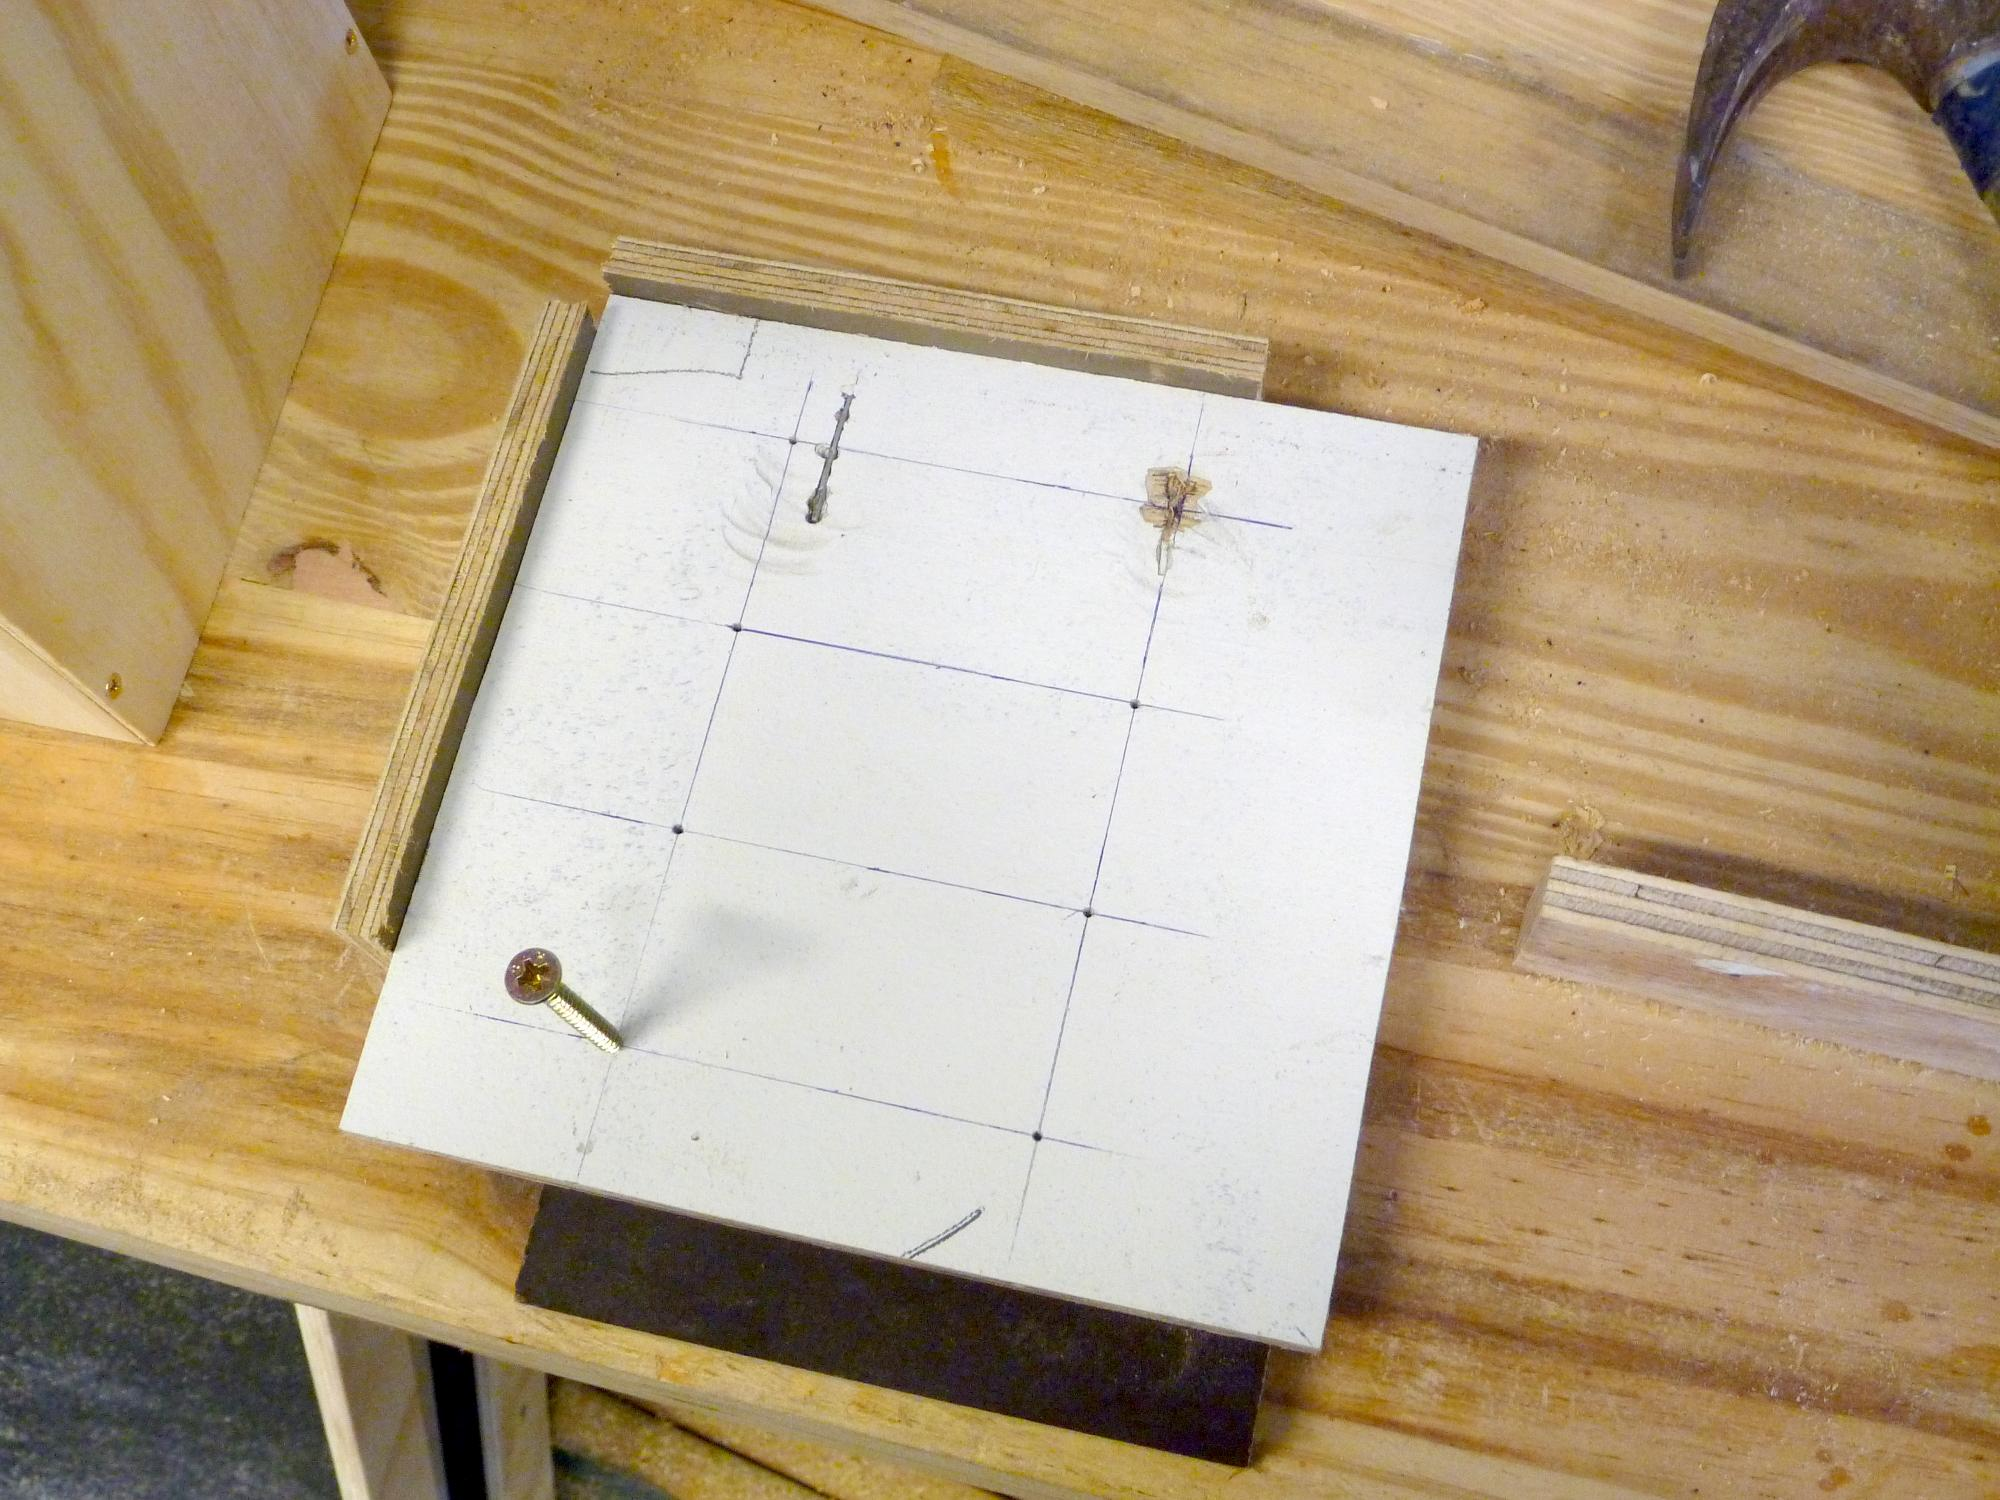 06-tray_screw_hole_alignment_jig.jpg